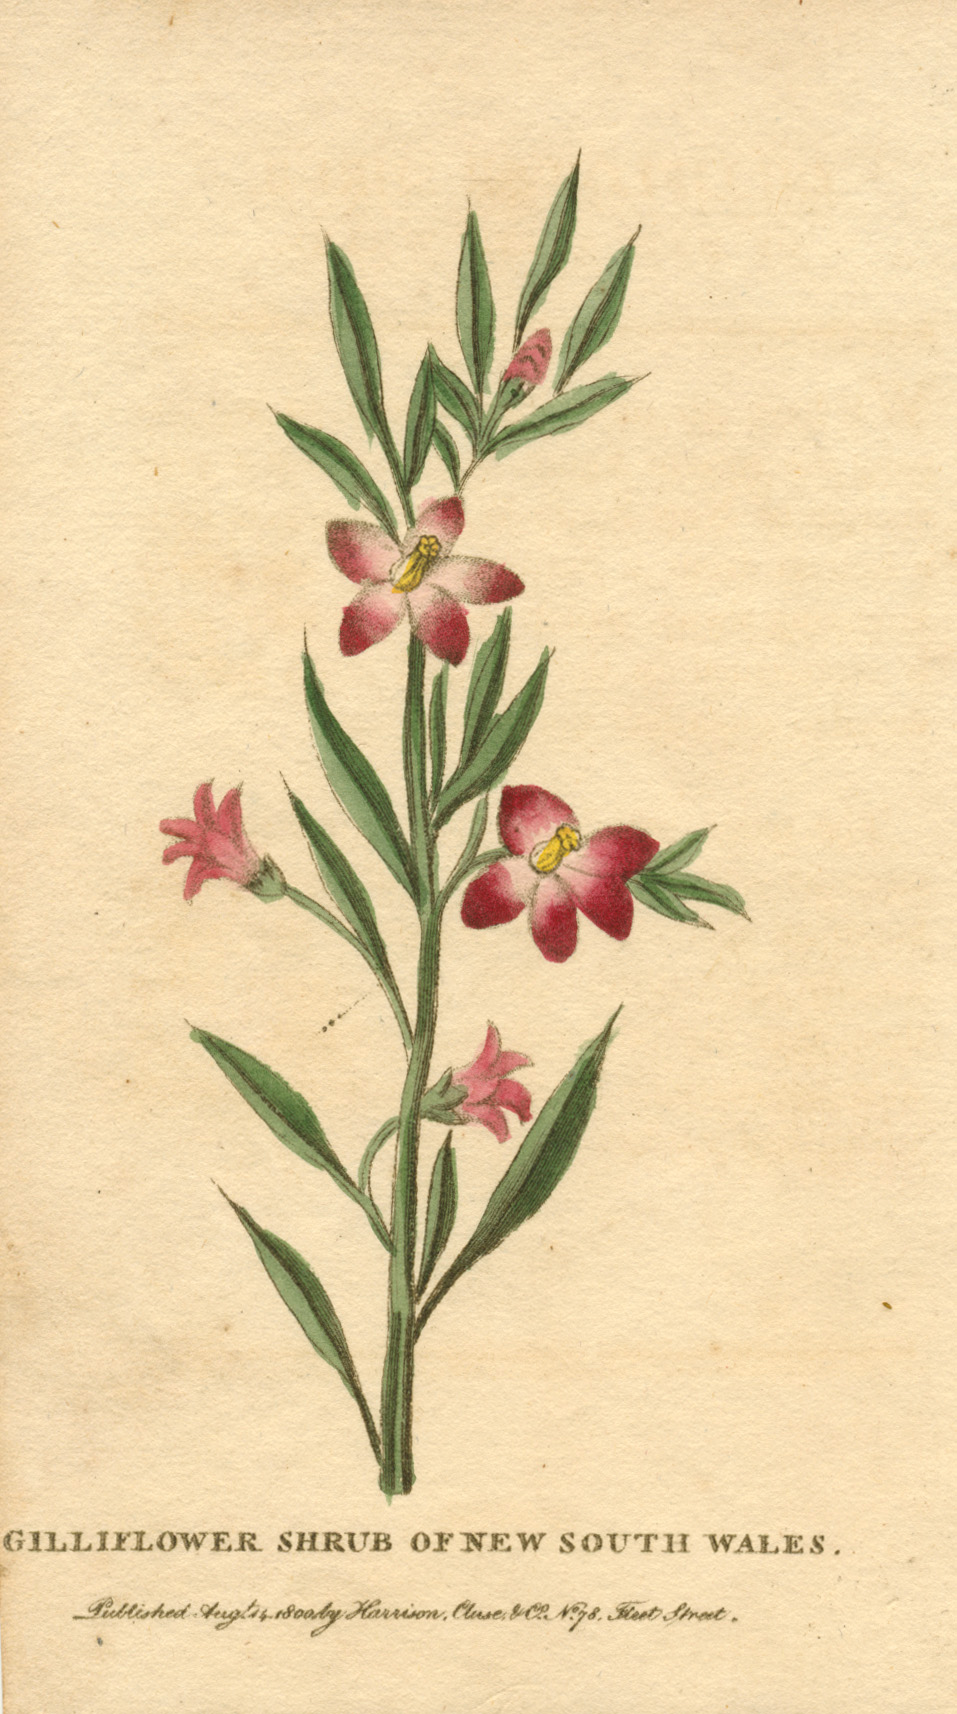 Gilliflower Shrub of New South Wales c1800. Harrison, Cluse & Co.